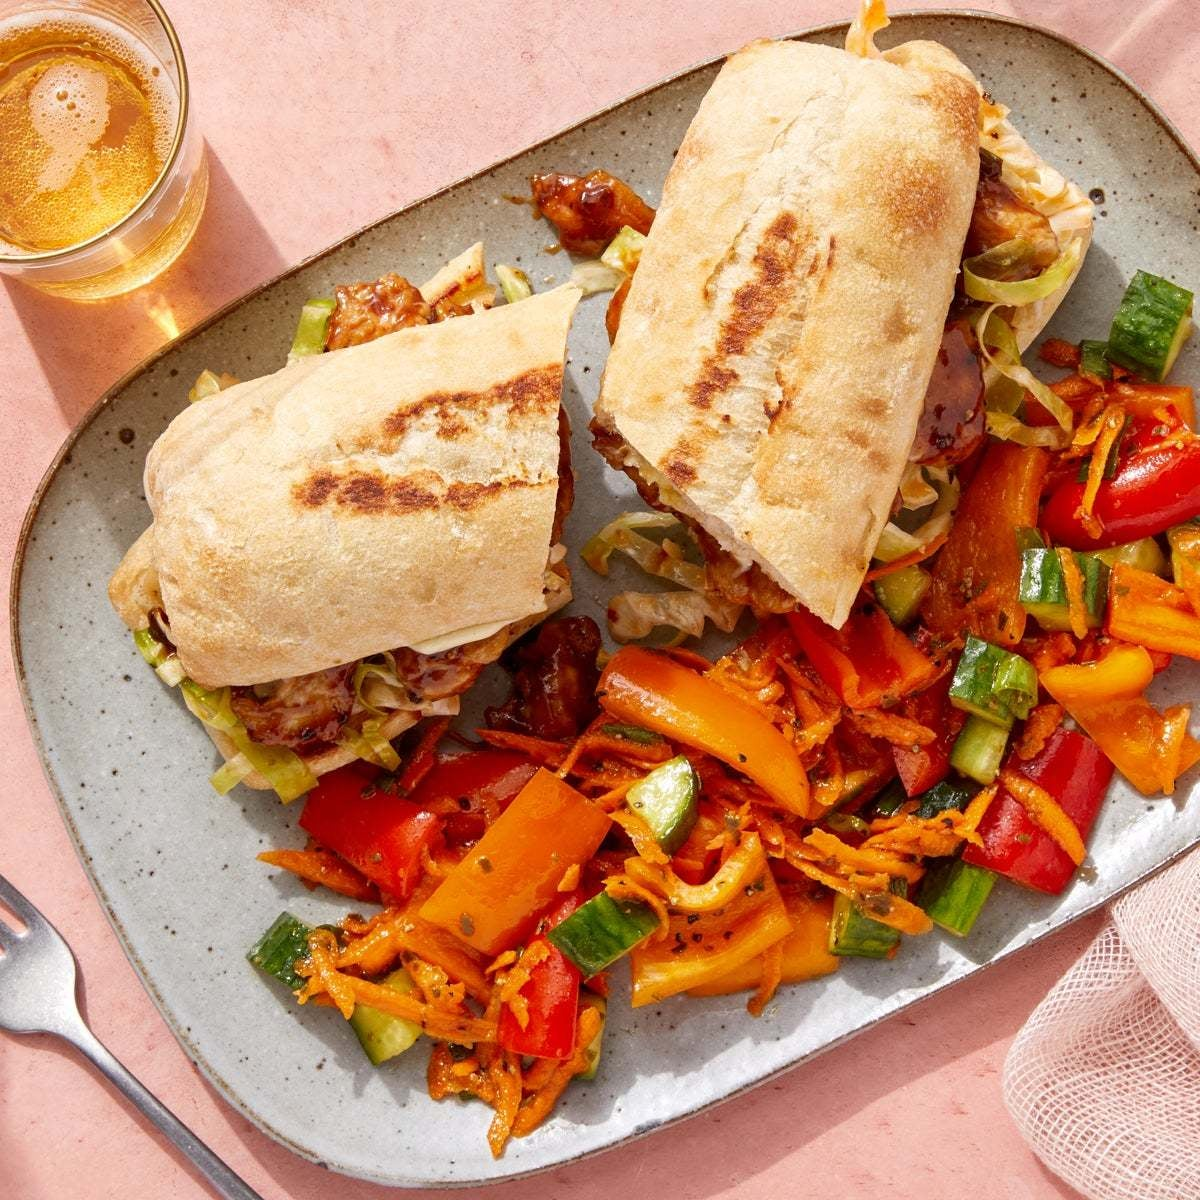 Hoisin Chicken Sandwiches with Carrot & Pepper Slaw